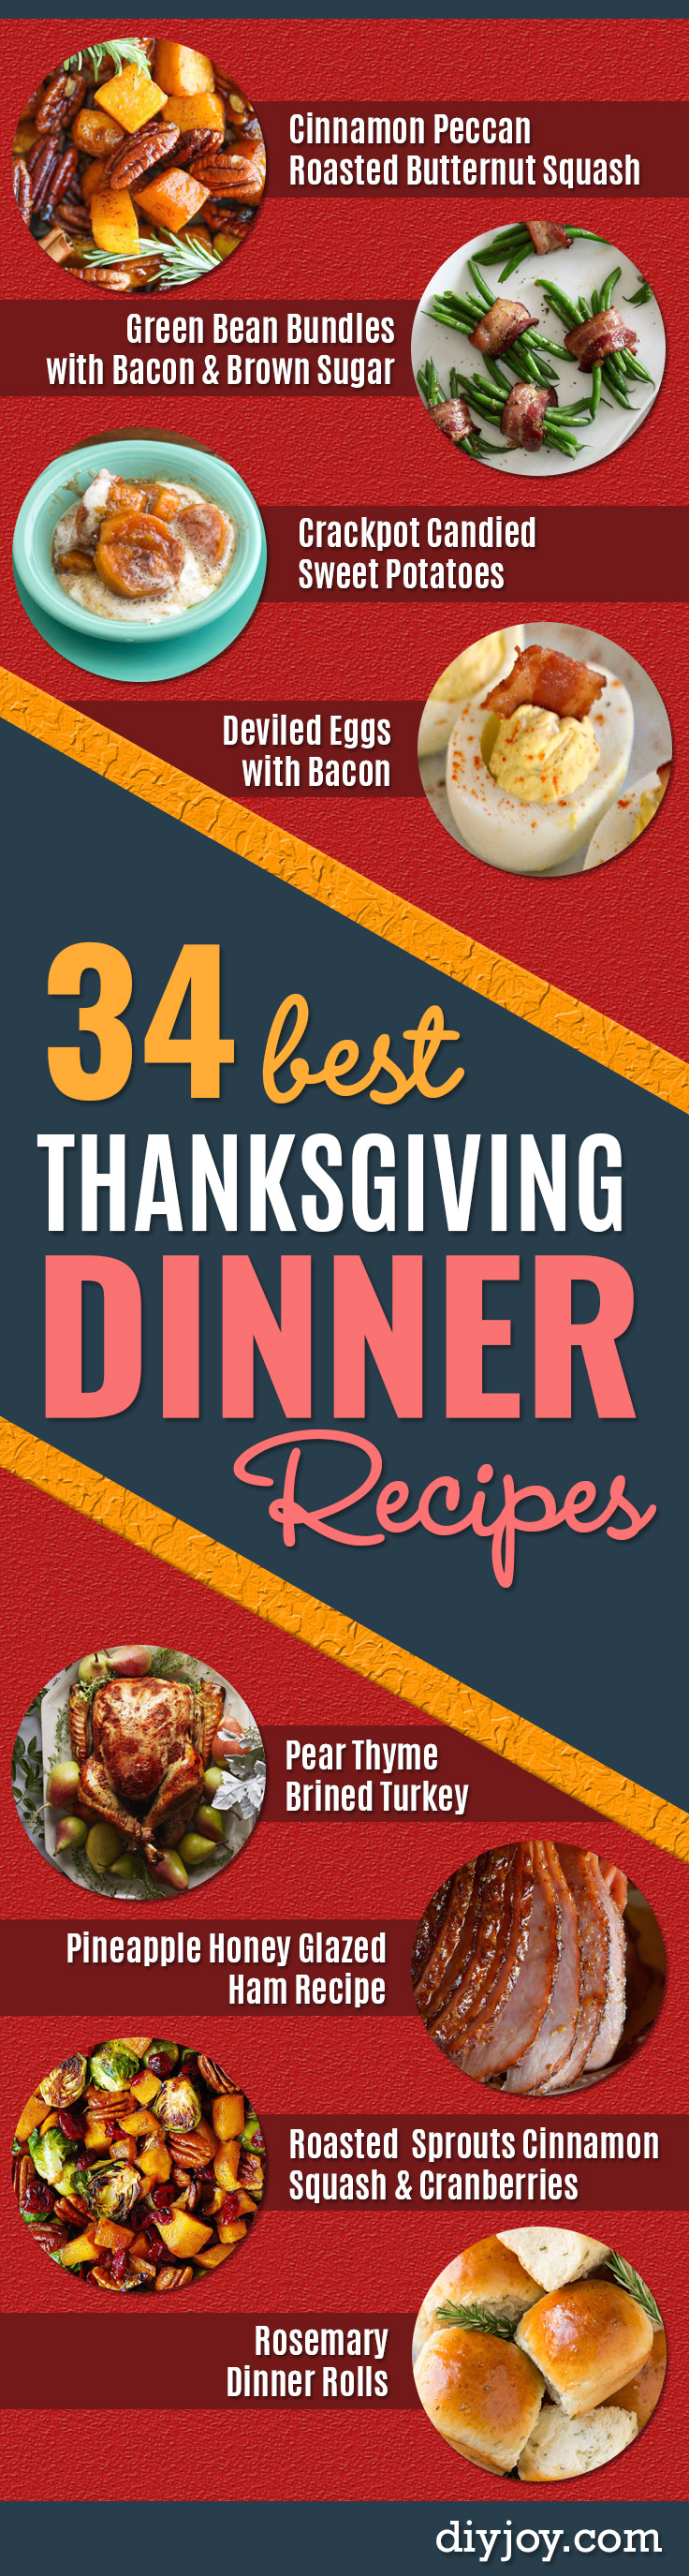 Thanksgiving Recipes - best thanksgiving dinner recipe ideas -easy DIY Desserts, Sides, Sauces, Main Courses, Vegetables, Pie and Side Dishes. Simple Gravy, Cranberries, Turkey and Pies With Step by Step Tutorials